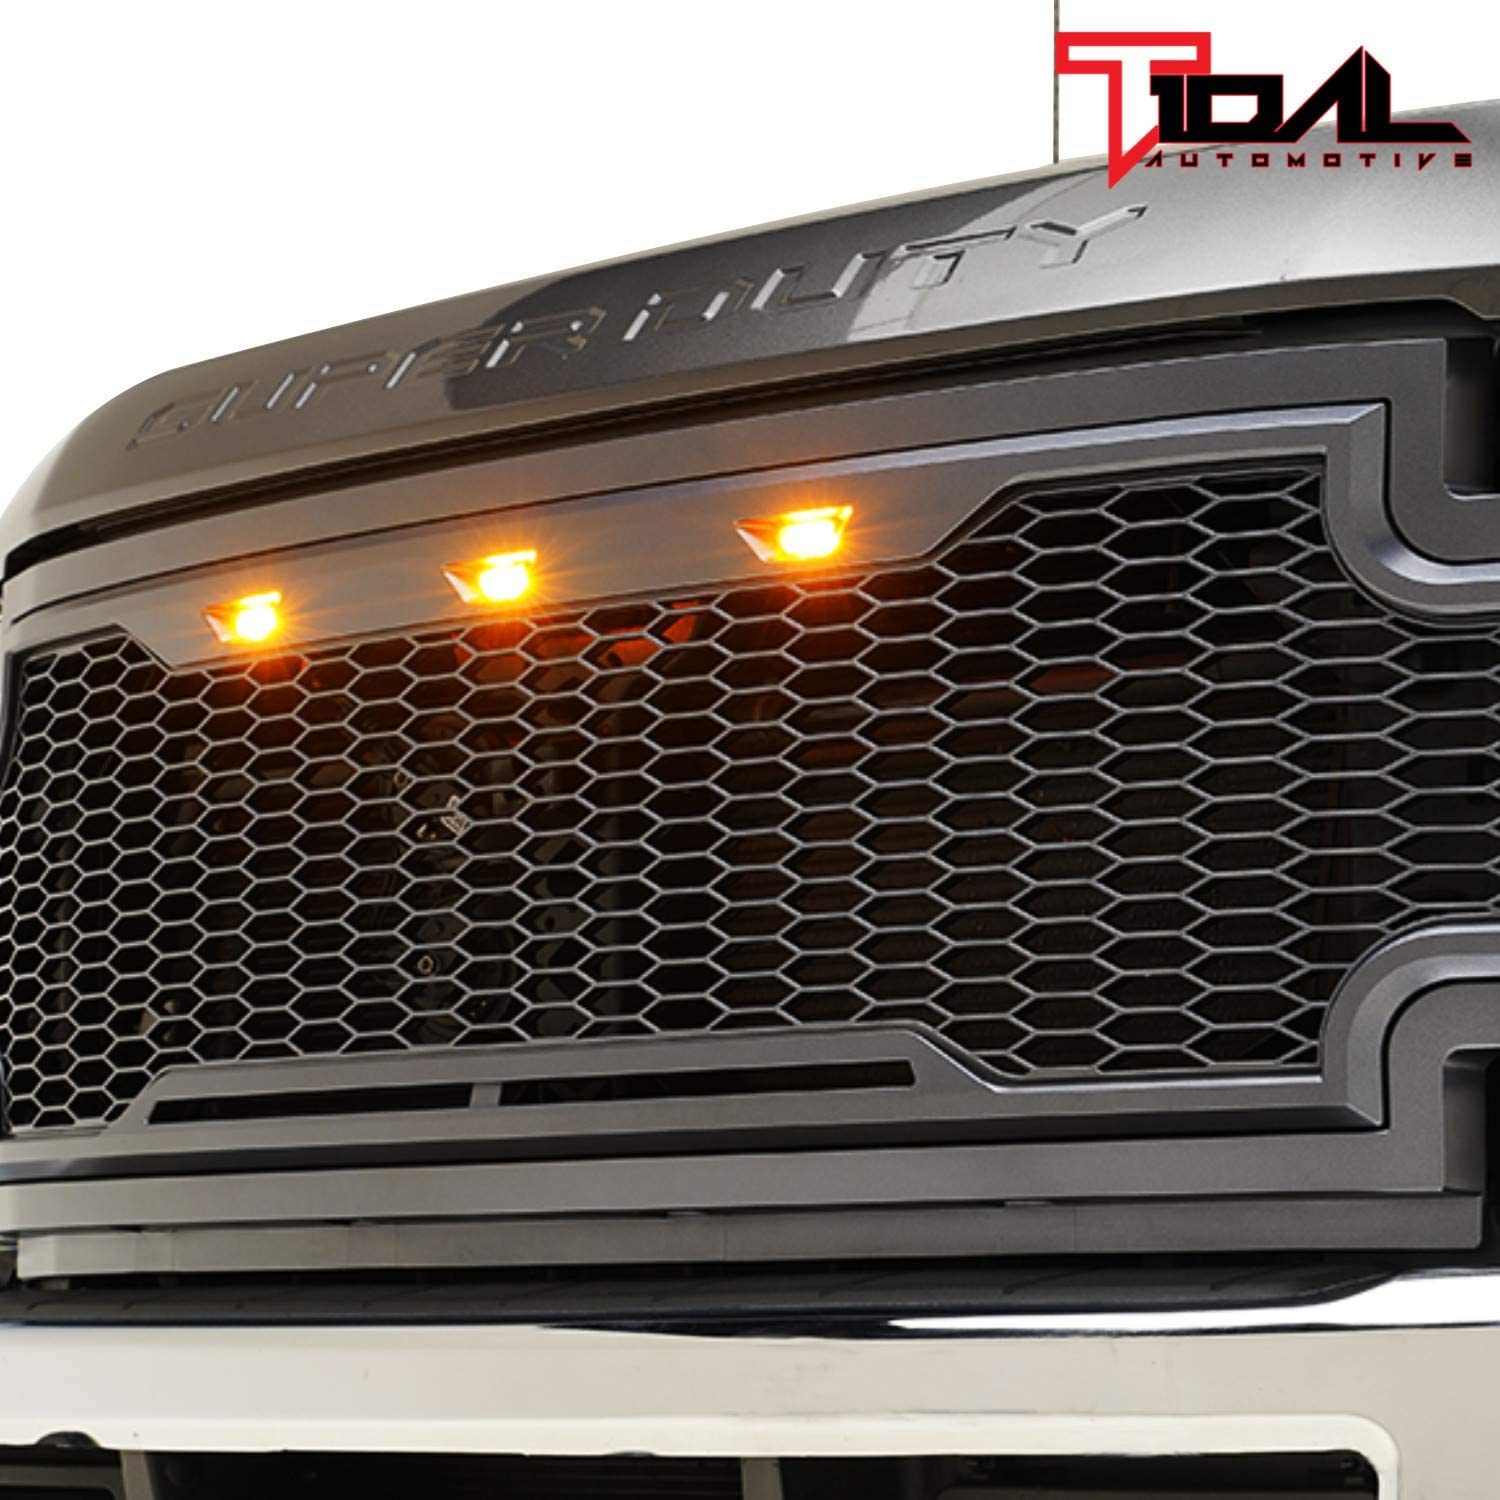 Charcoal Gray Tidal Replacement Upper Grille Front Mesh Grill for 17-19 Ford F250 F350 Super Duty With Amber LED Lights